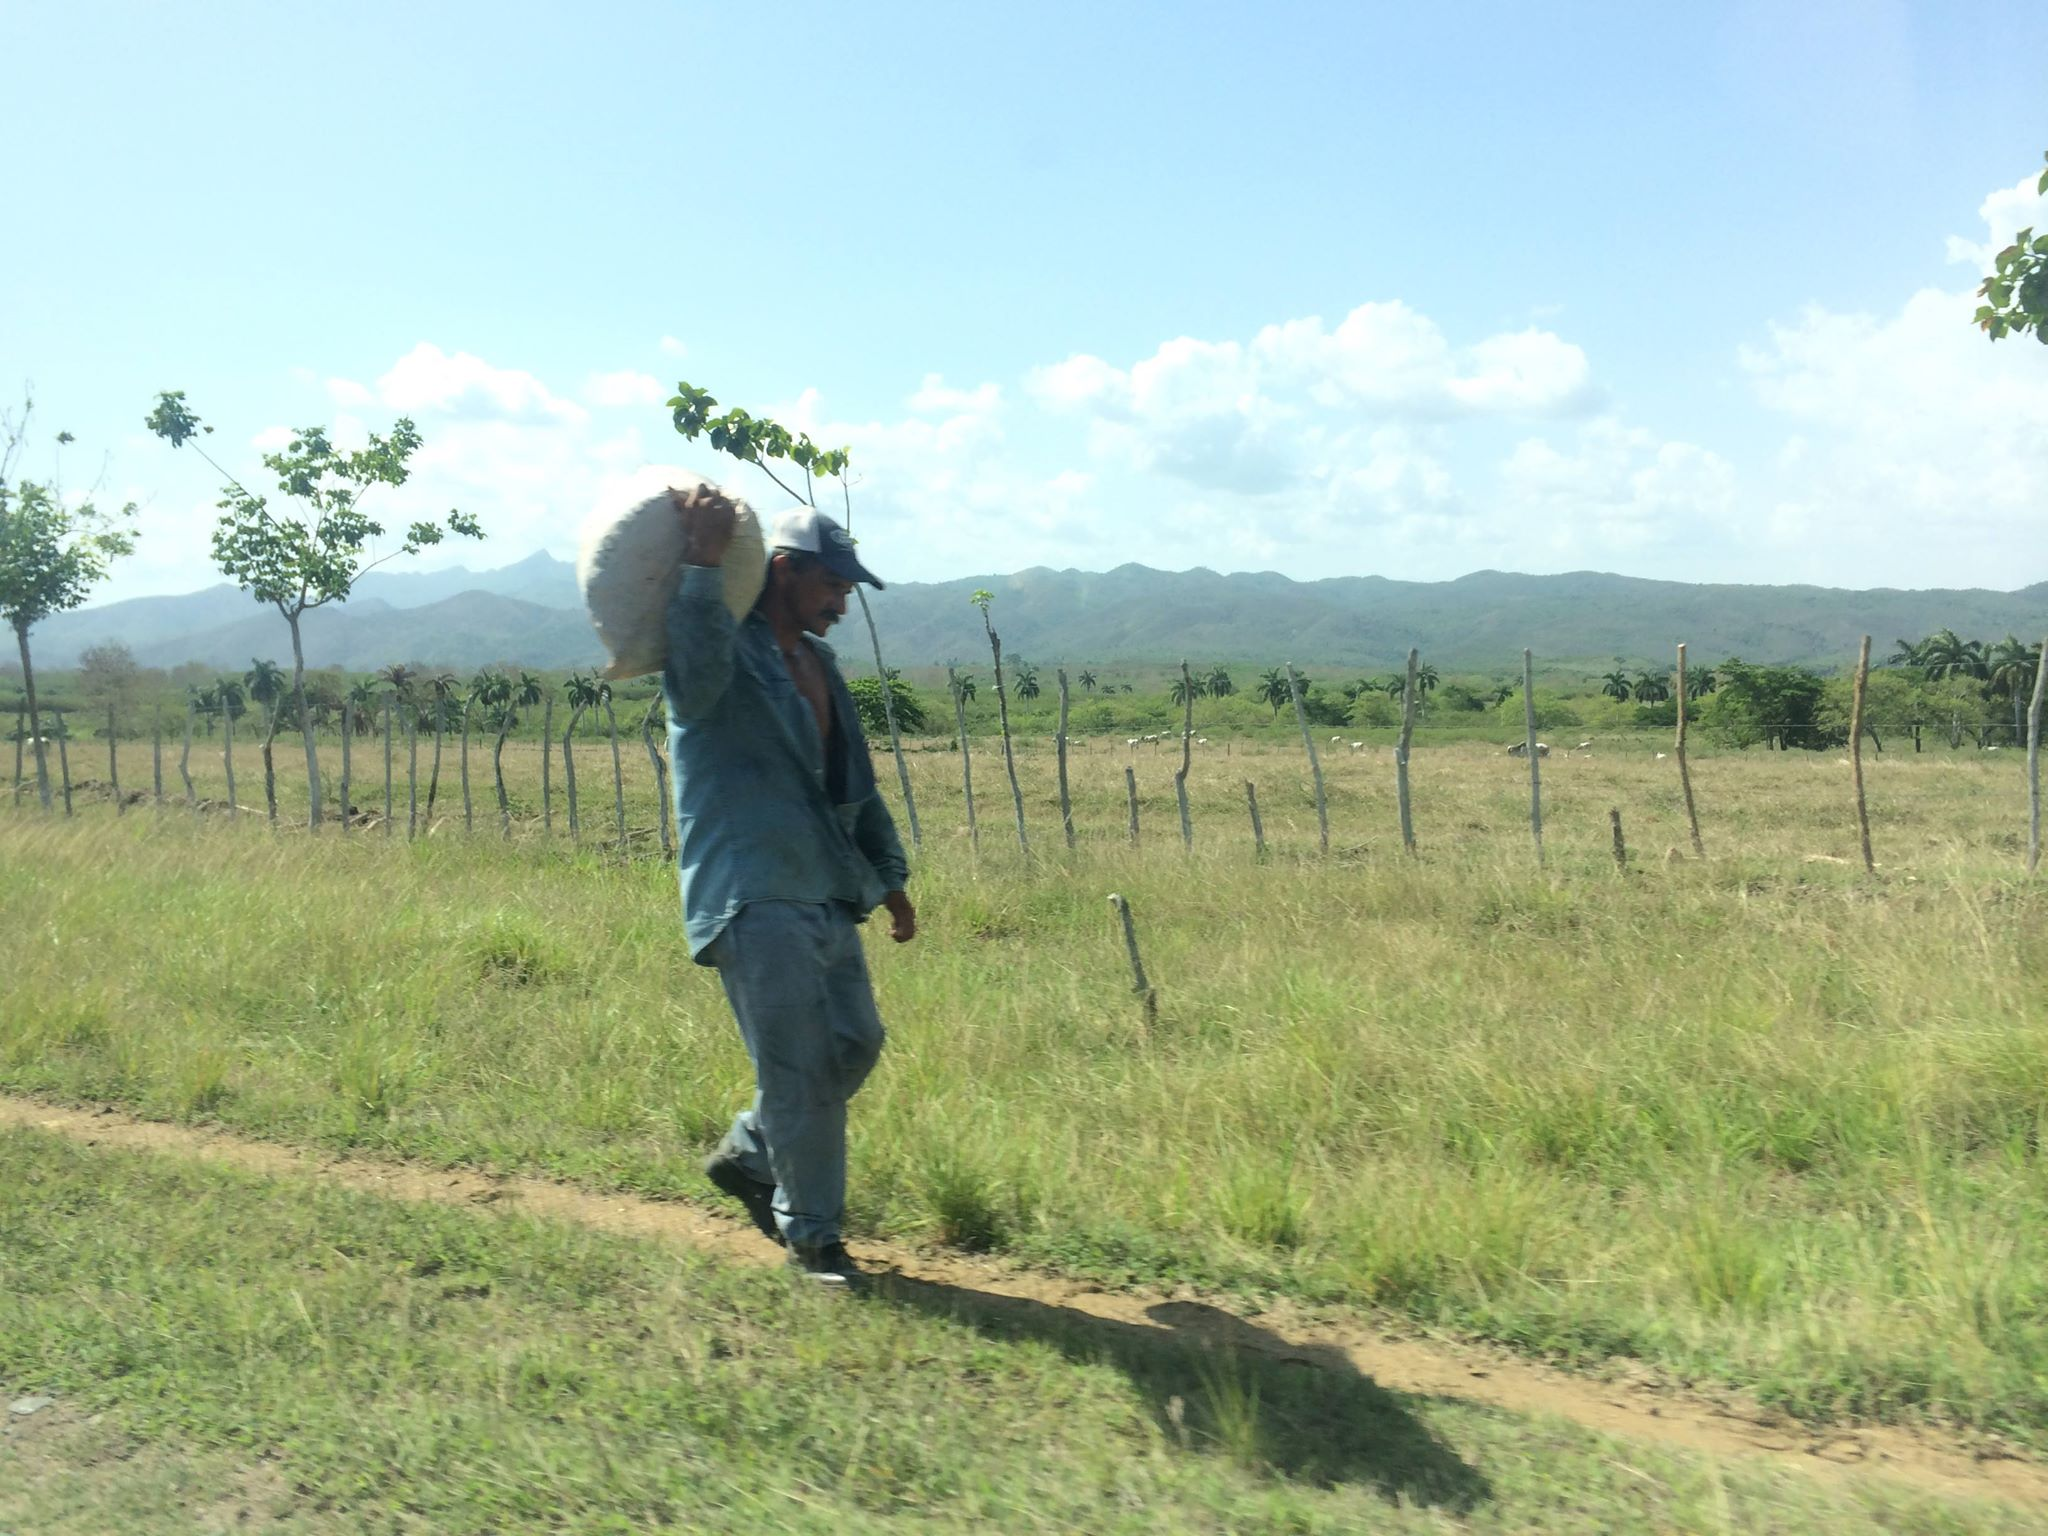 An image of a Cuban carryinga sack home on a dirt path in the Valle de los Ingenios just outside Trinidad, Cuba.